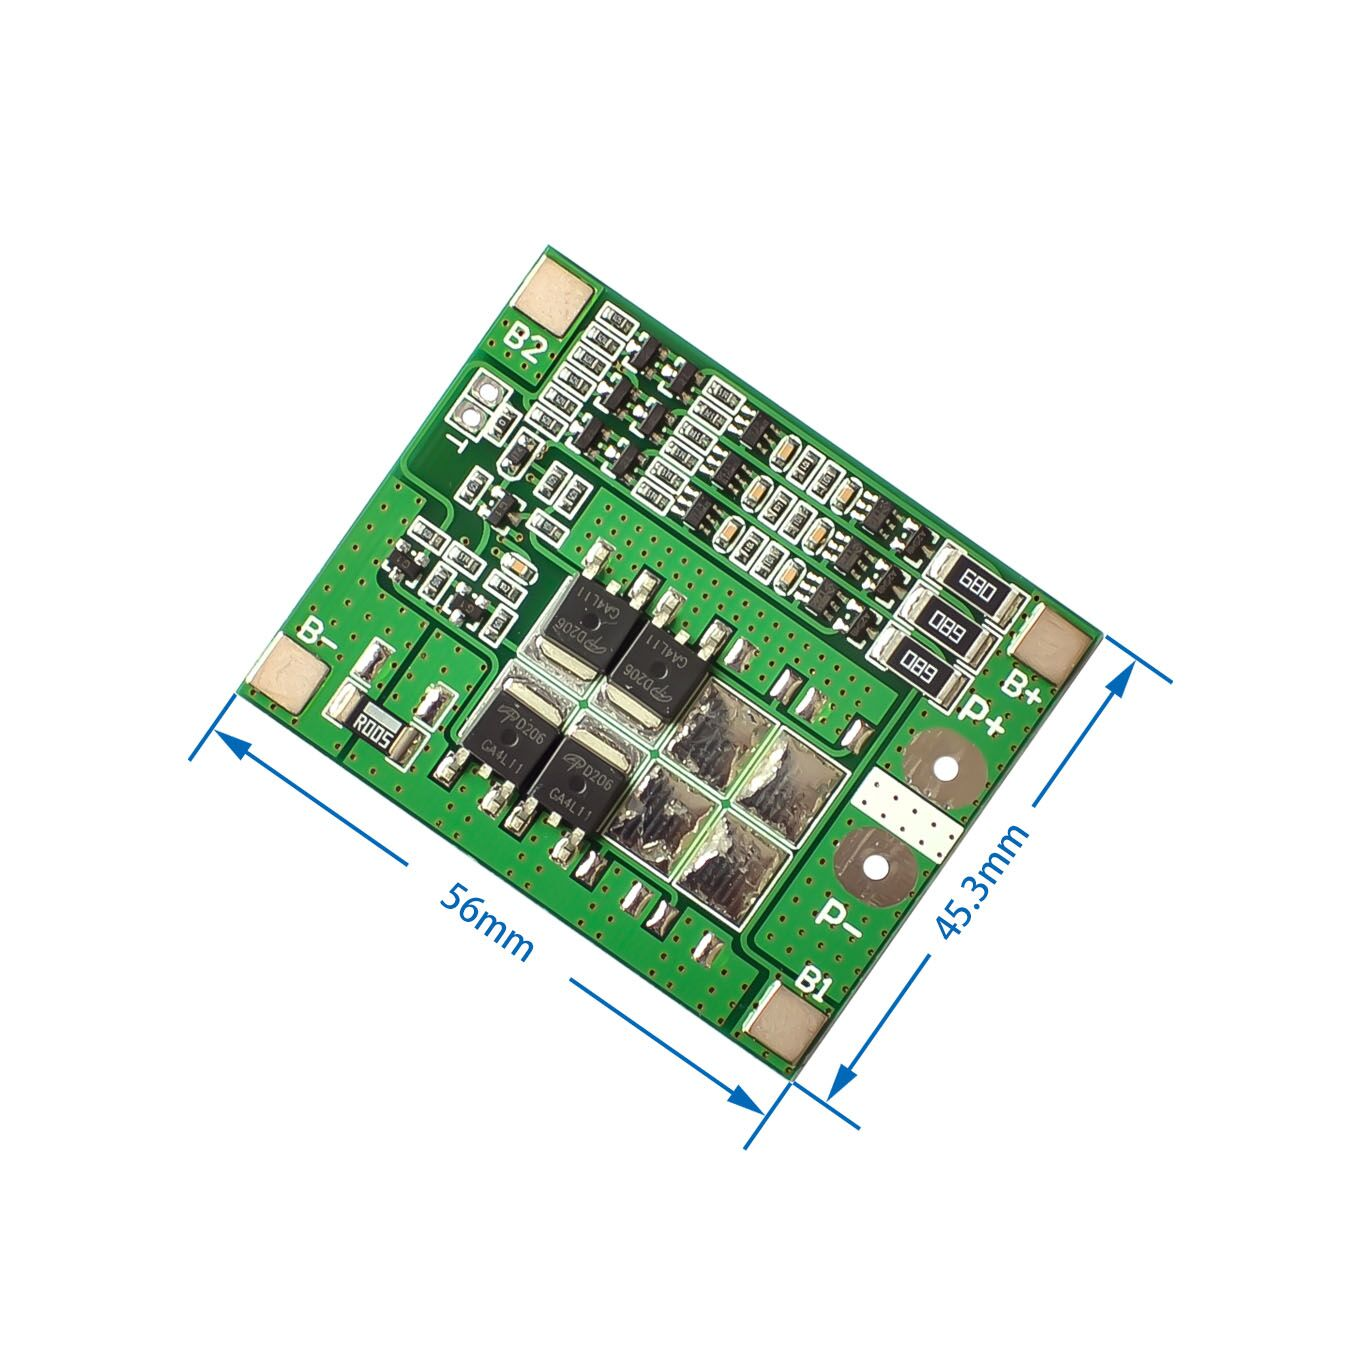 10PCSLOT 3S 15A 11.1V 12V 12.6V Lithium Battery Protection Board Charger Protect Module Balance 18650 Li-ion Lipo Cell Pack bms